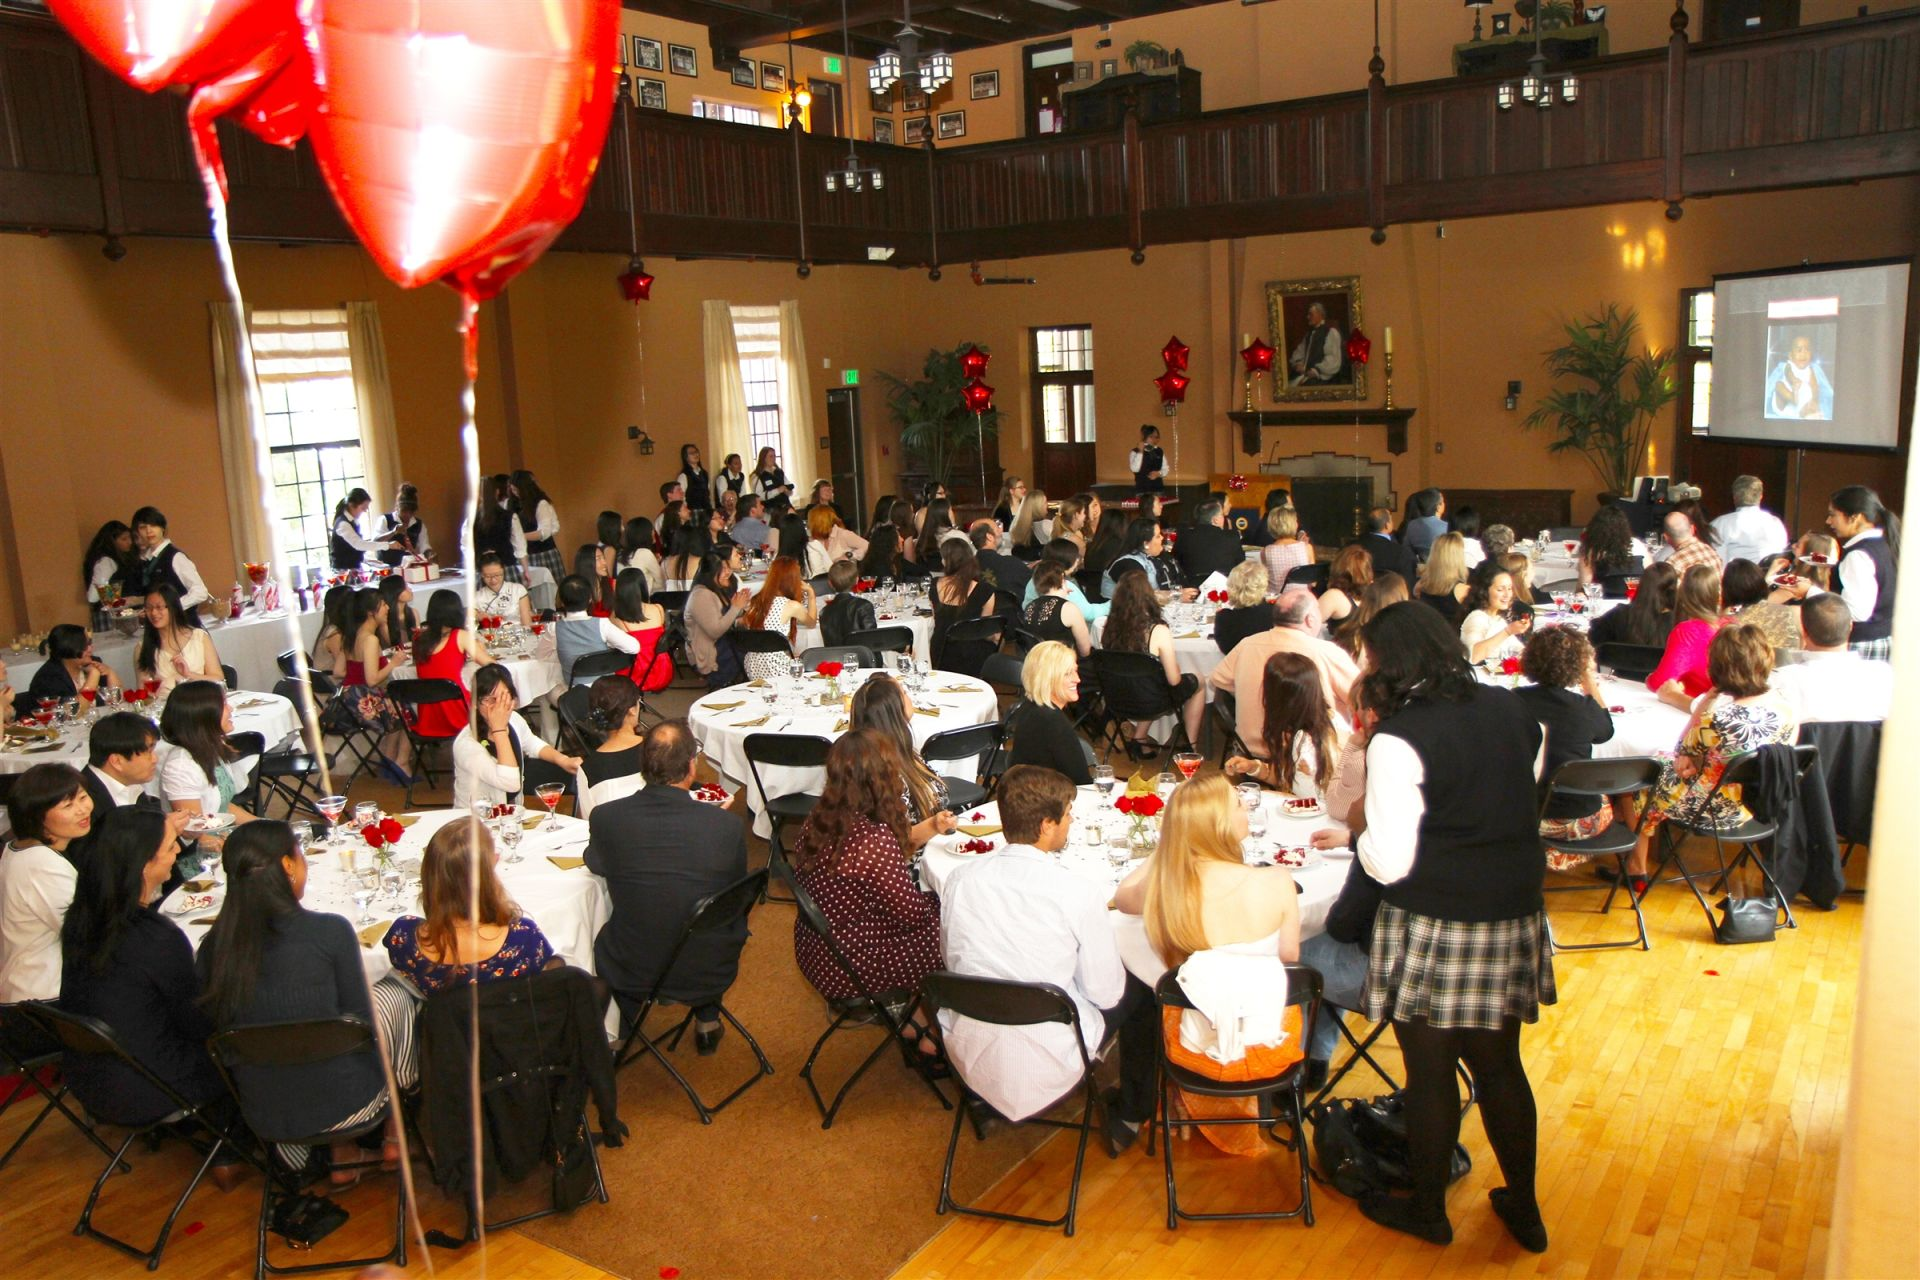 The Great Hall is used for many community and school events.